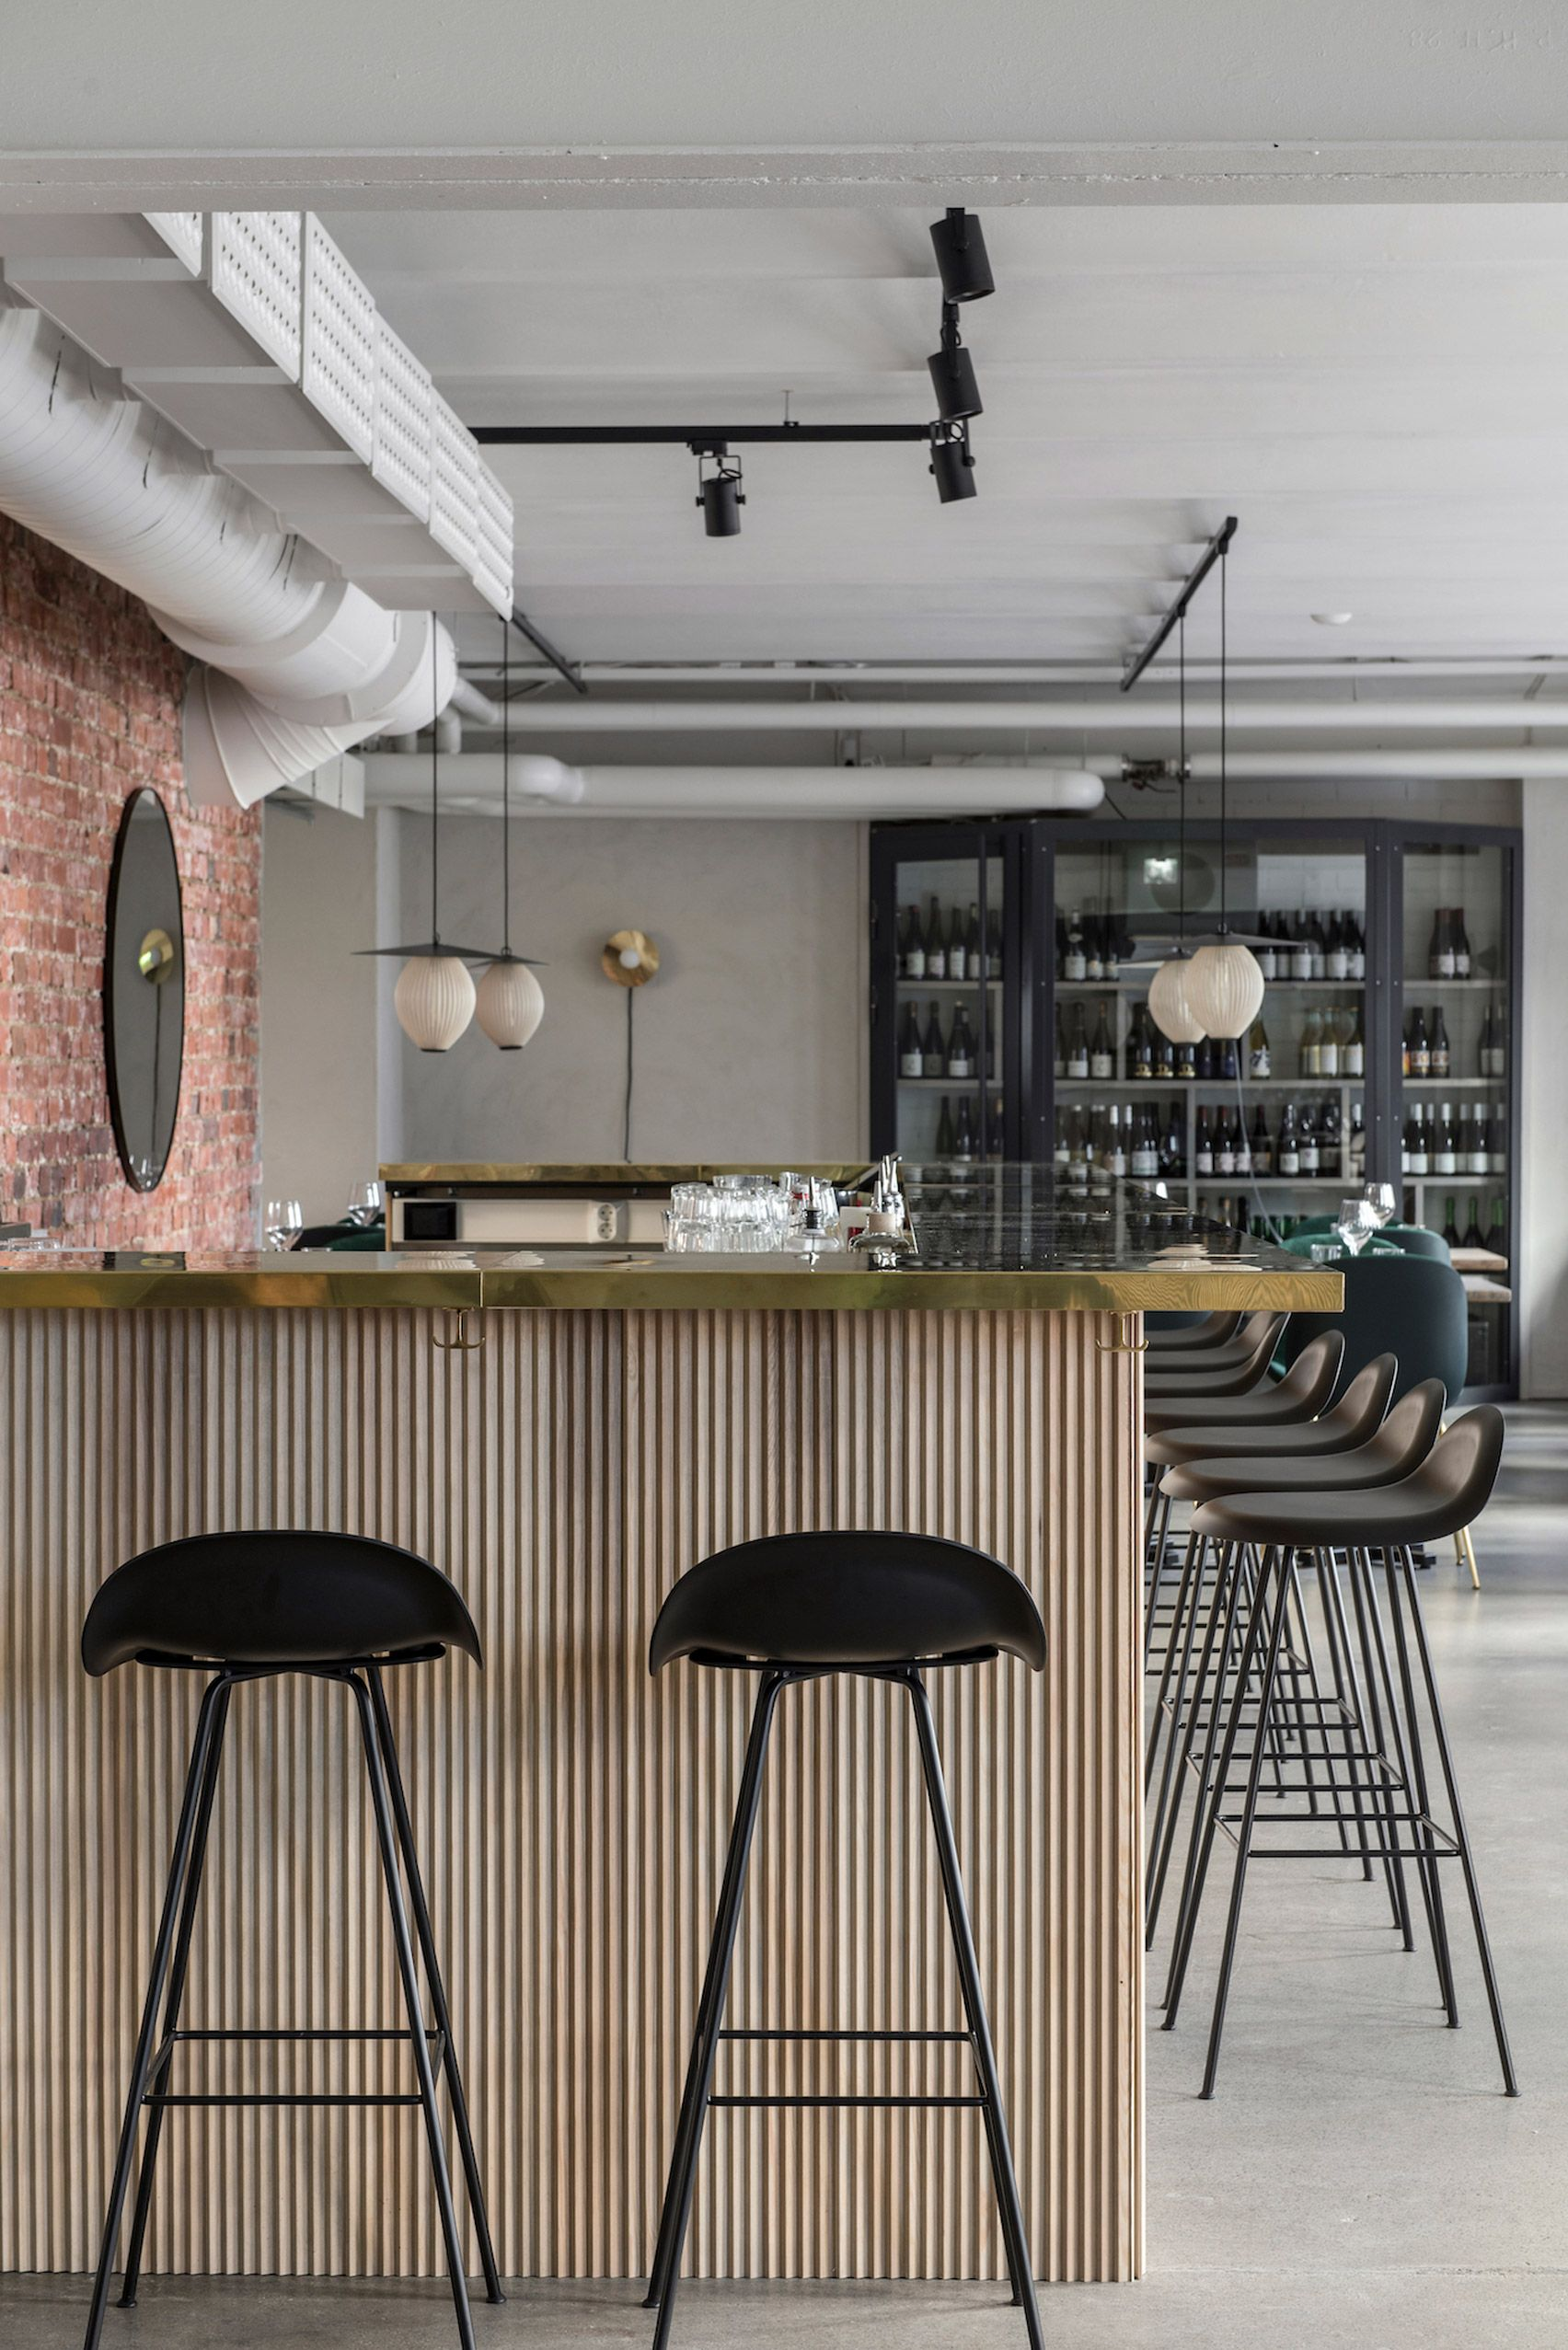 Farm to table cooking informs natural colour palette of Maannos